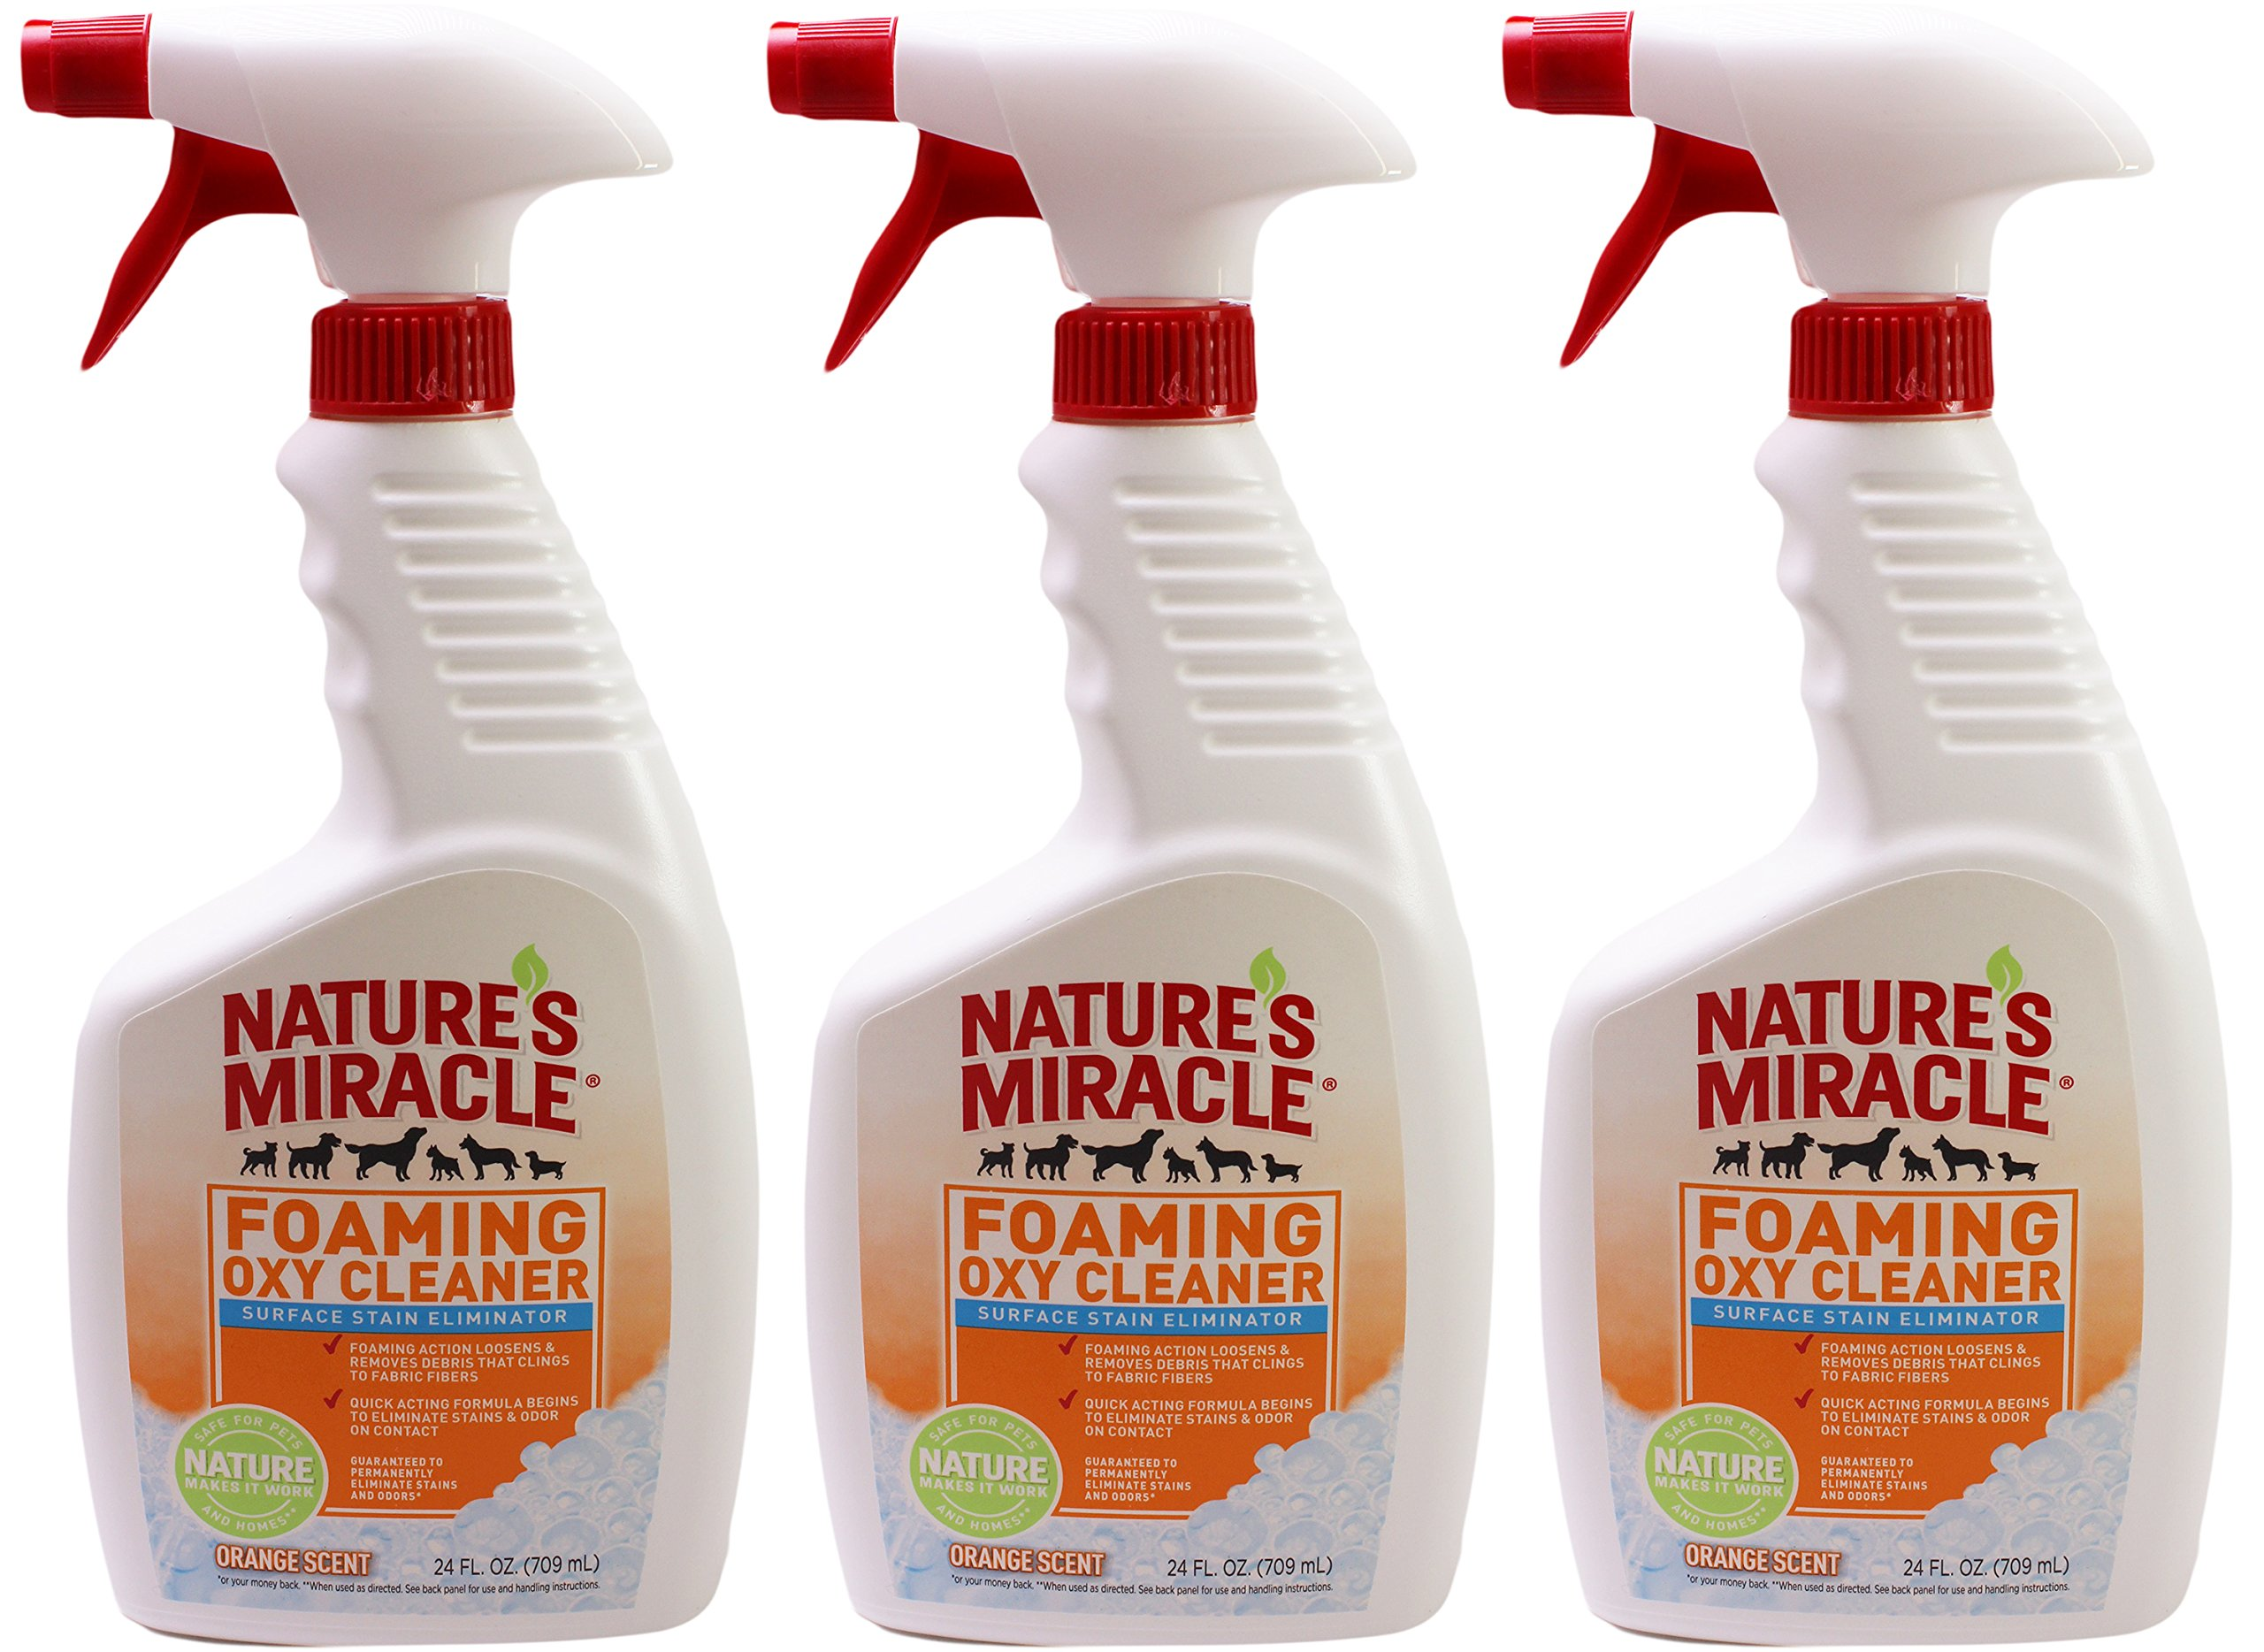 Nature's Miracle Foaming Oxy Cleaner Stain Eliminator Orange Scent (Pack of 3)